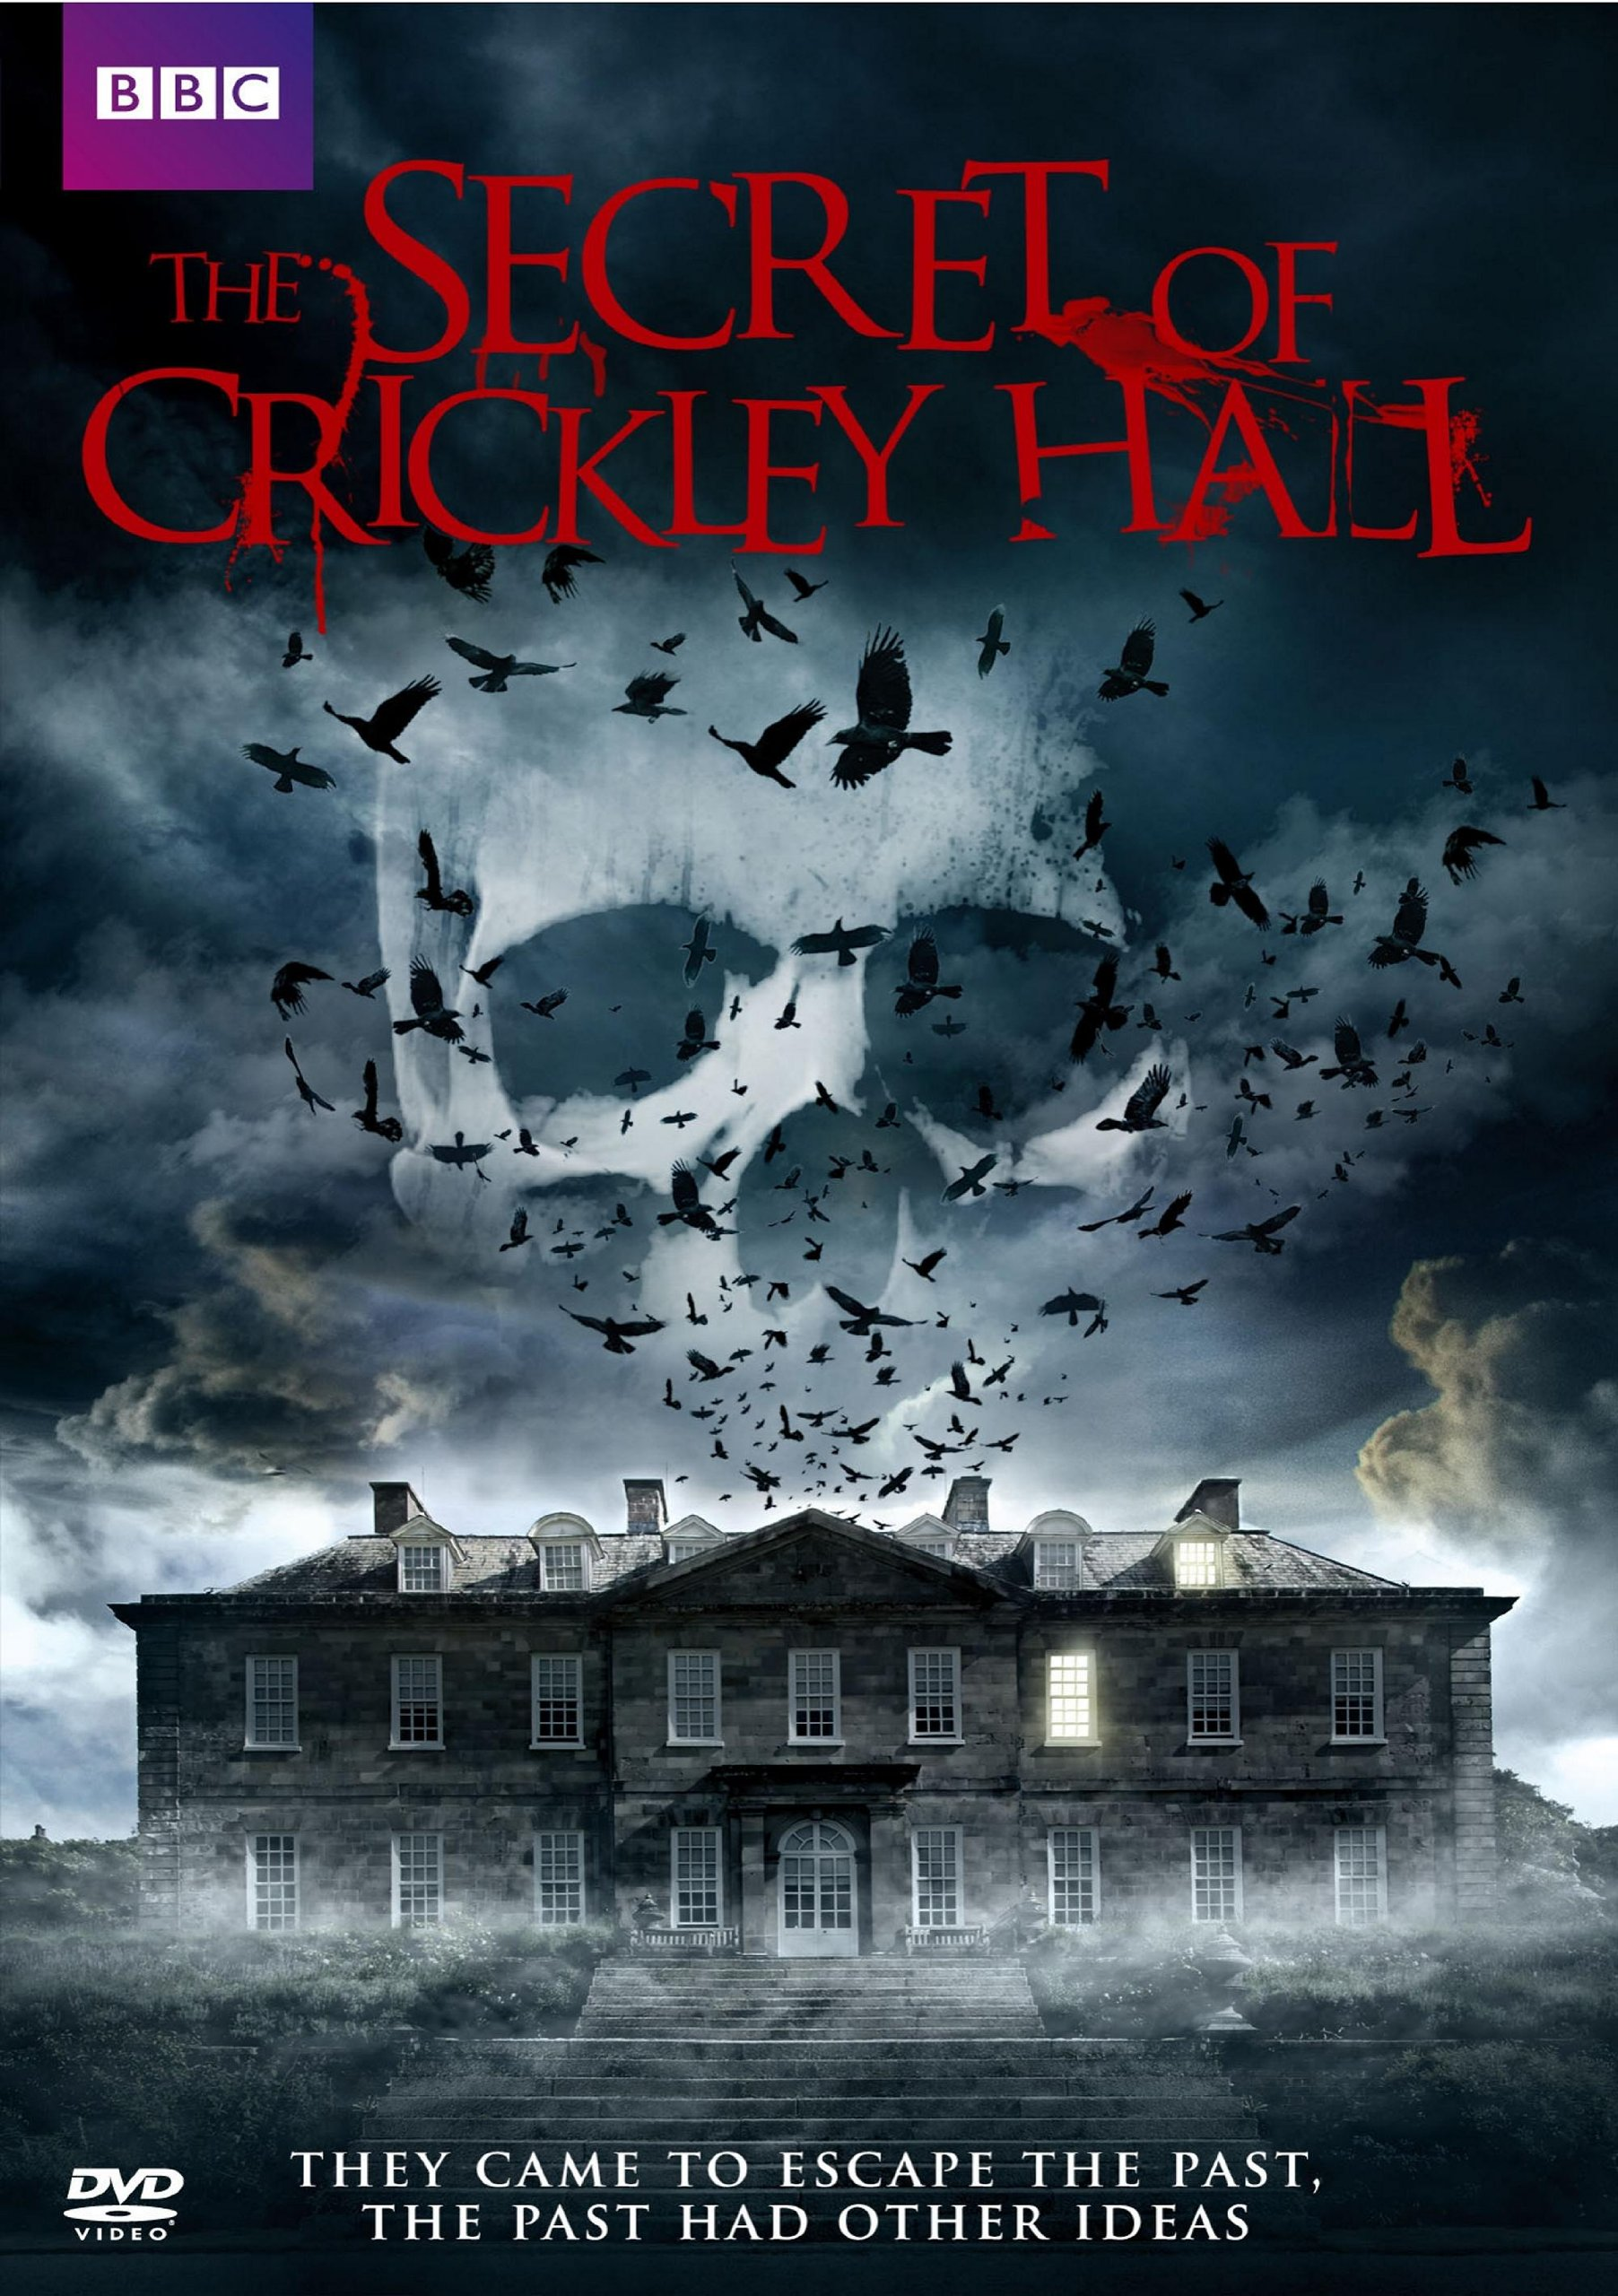 The Secret of Crickley Hall (miniseries